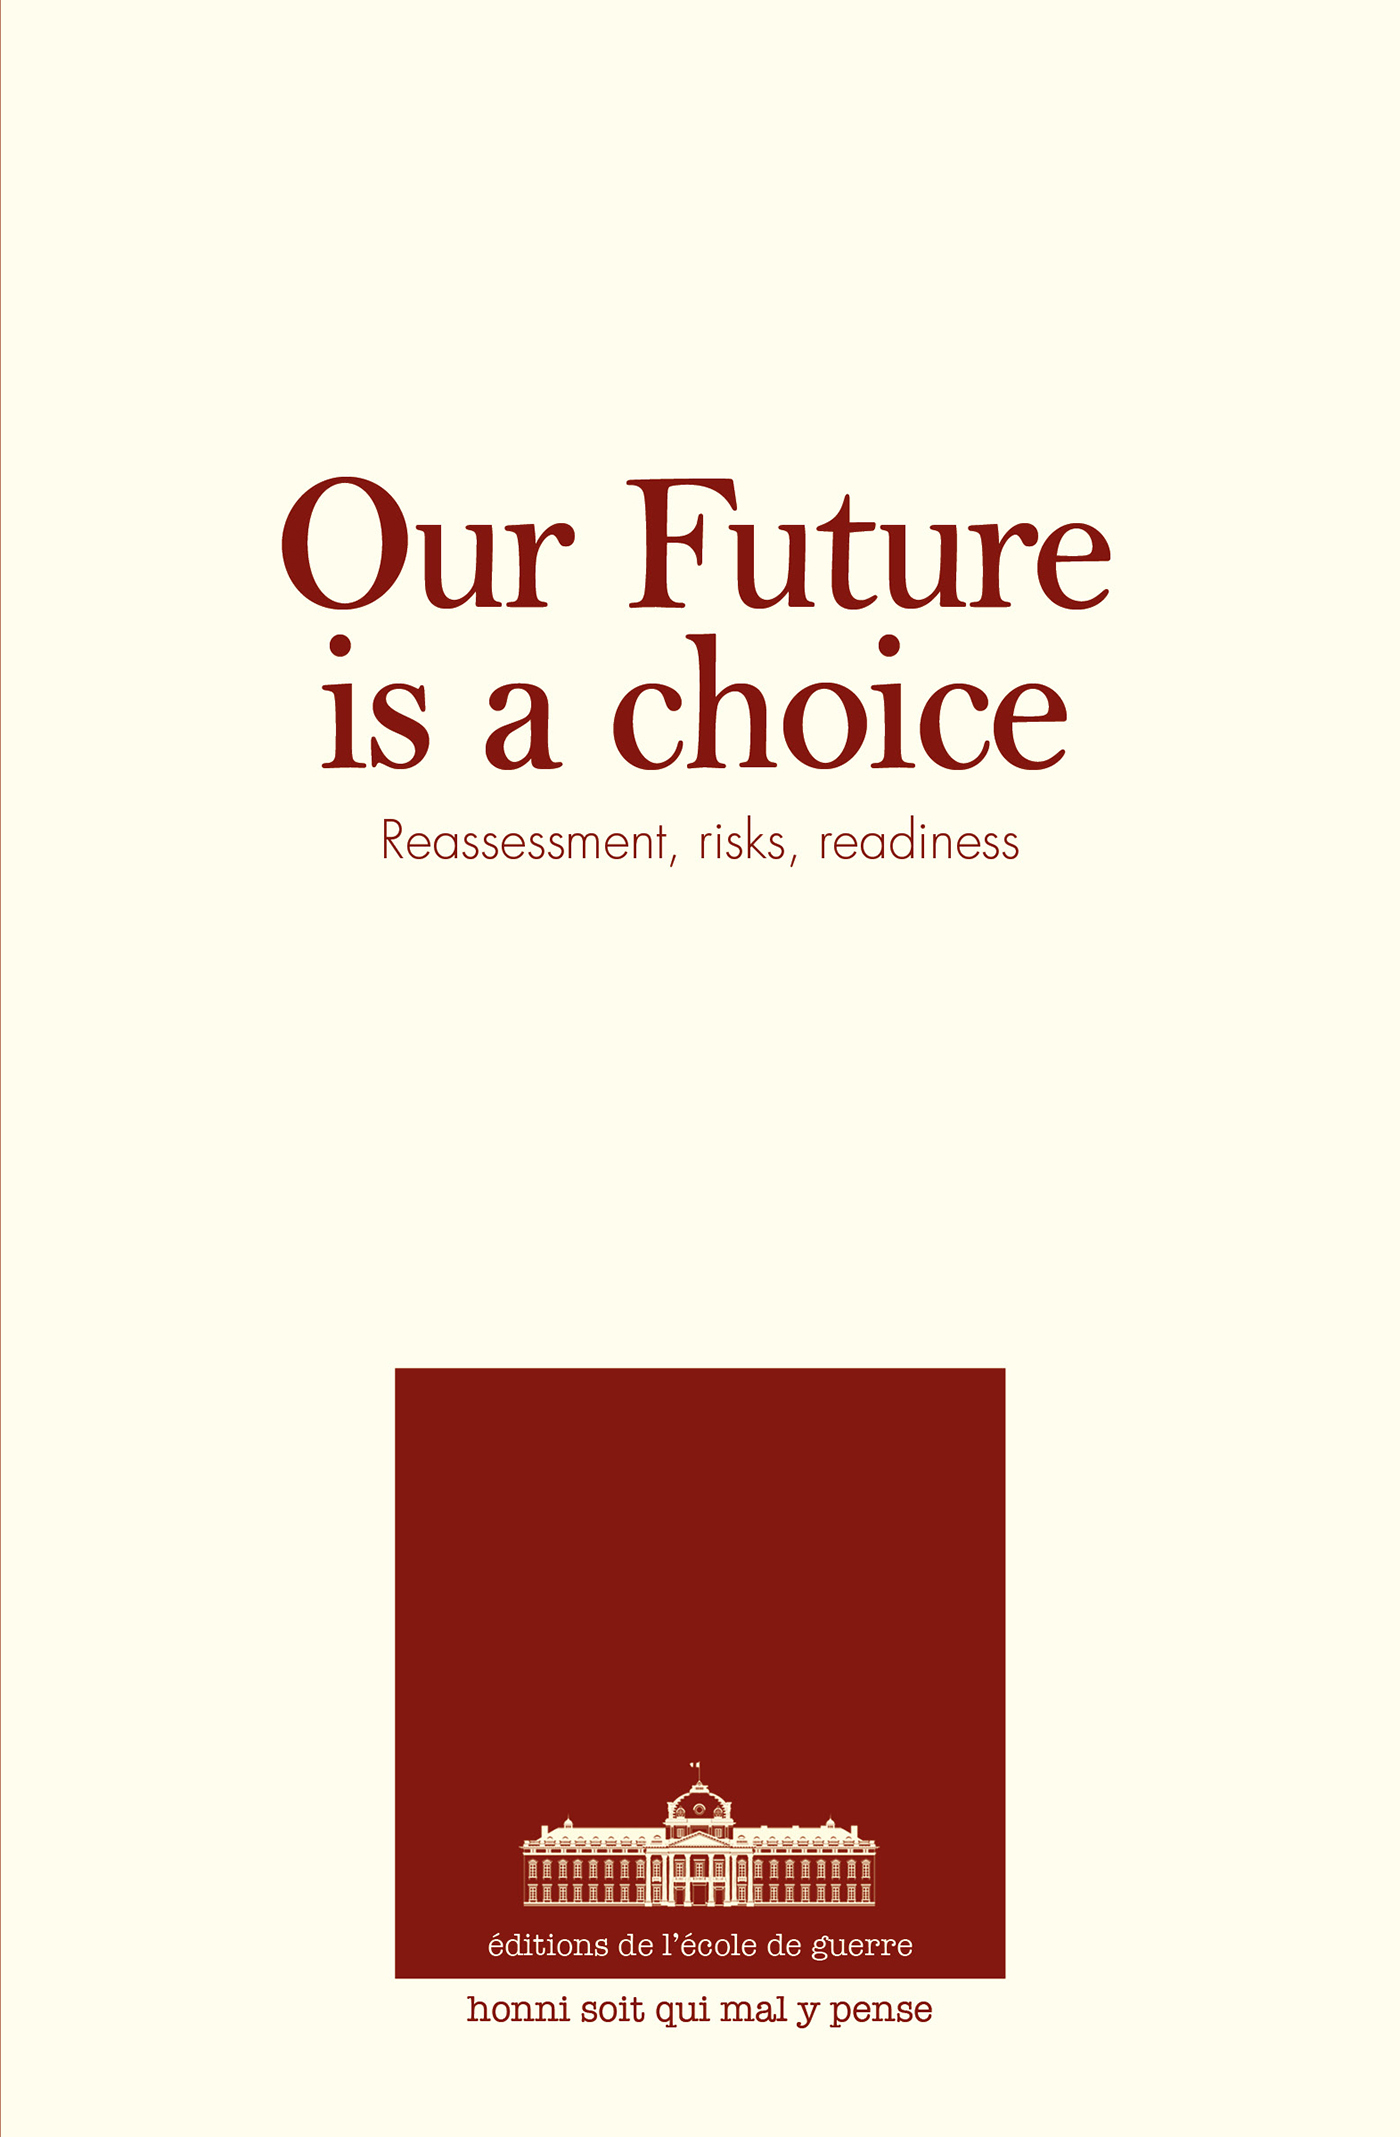 OUR FUTURE IS A CHOICE - REASSESSMENT, RISKS, READINESS